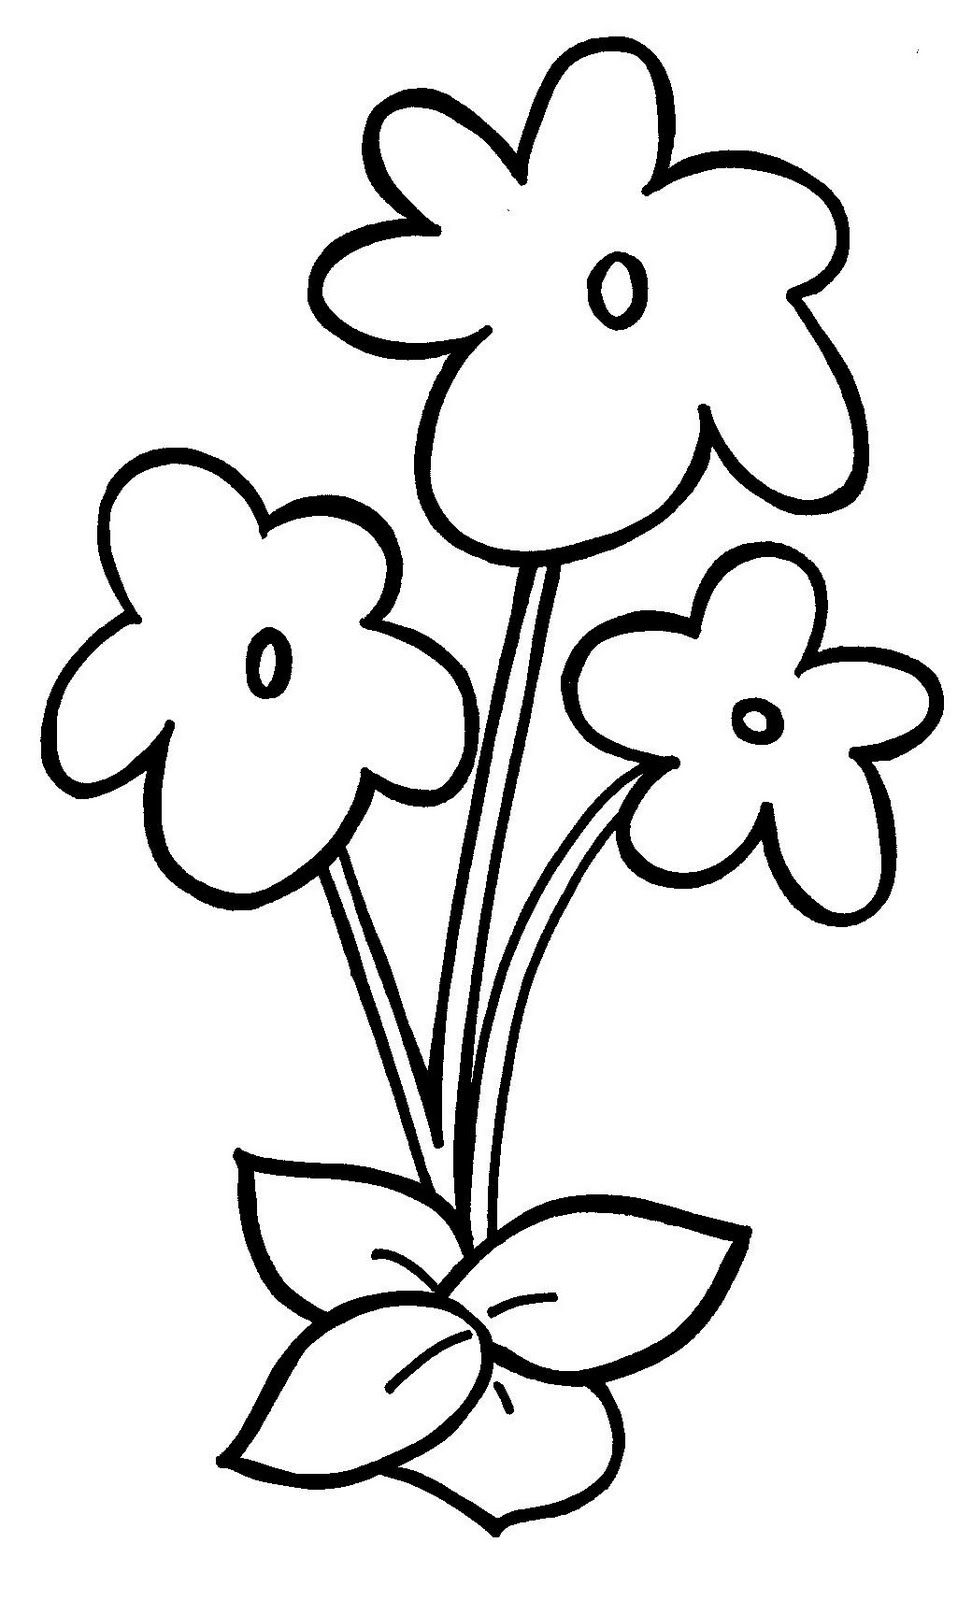 Brilliant Beginnings Preschool Coloring Pages has cute